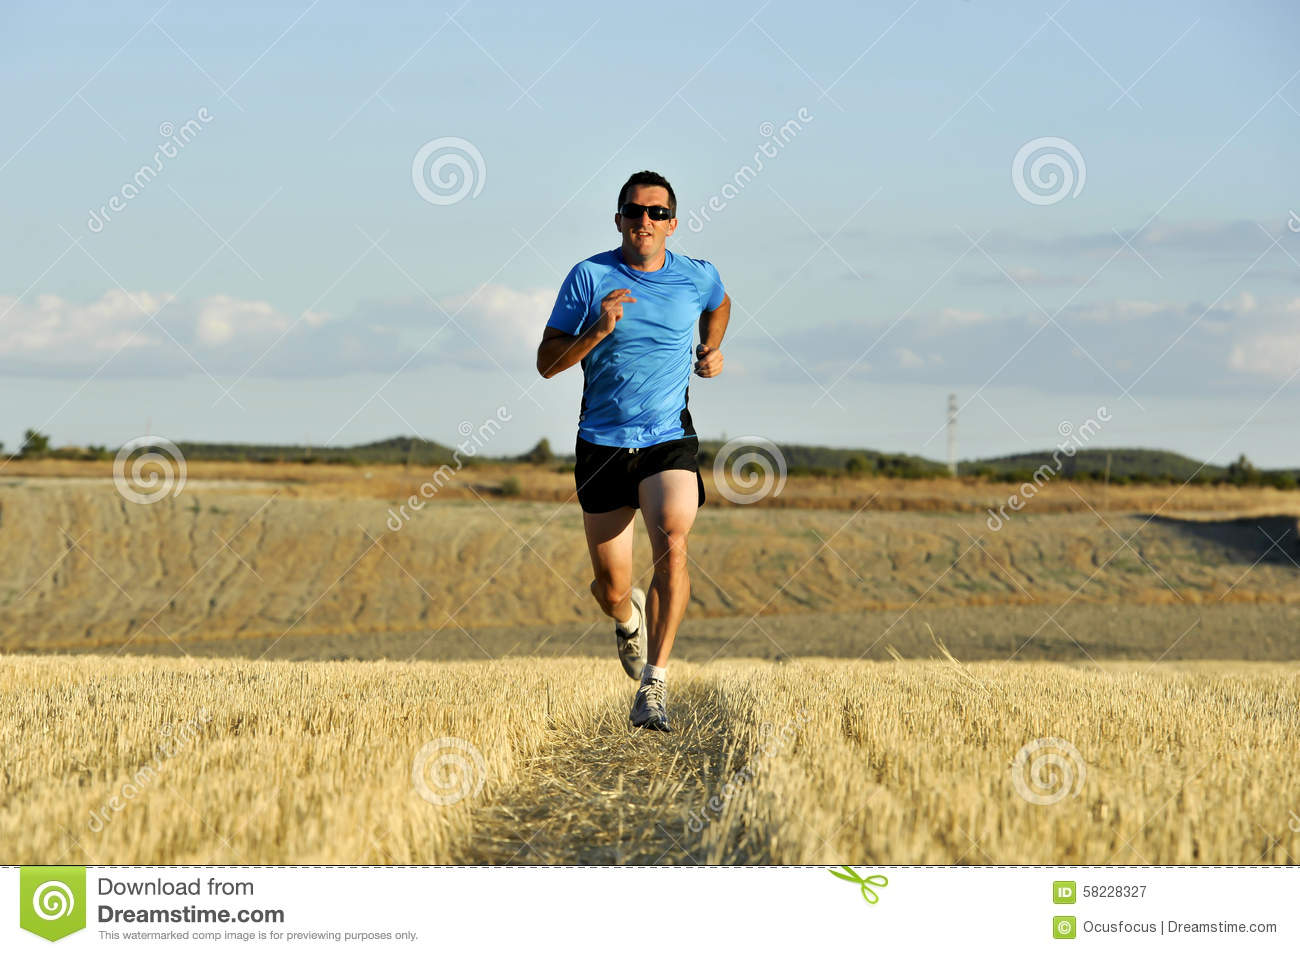 Sport man with sunglasses running outdoors on straw field ground in frontal perspective